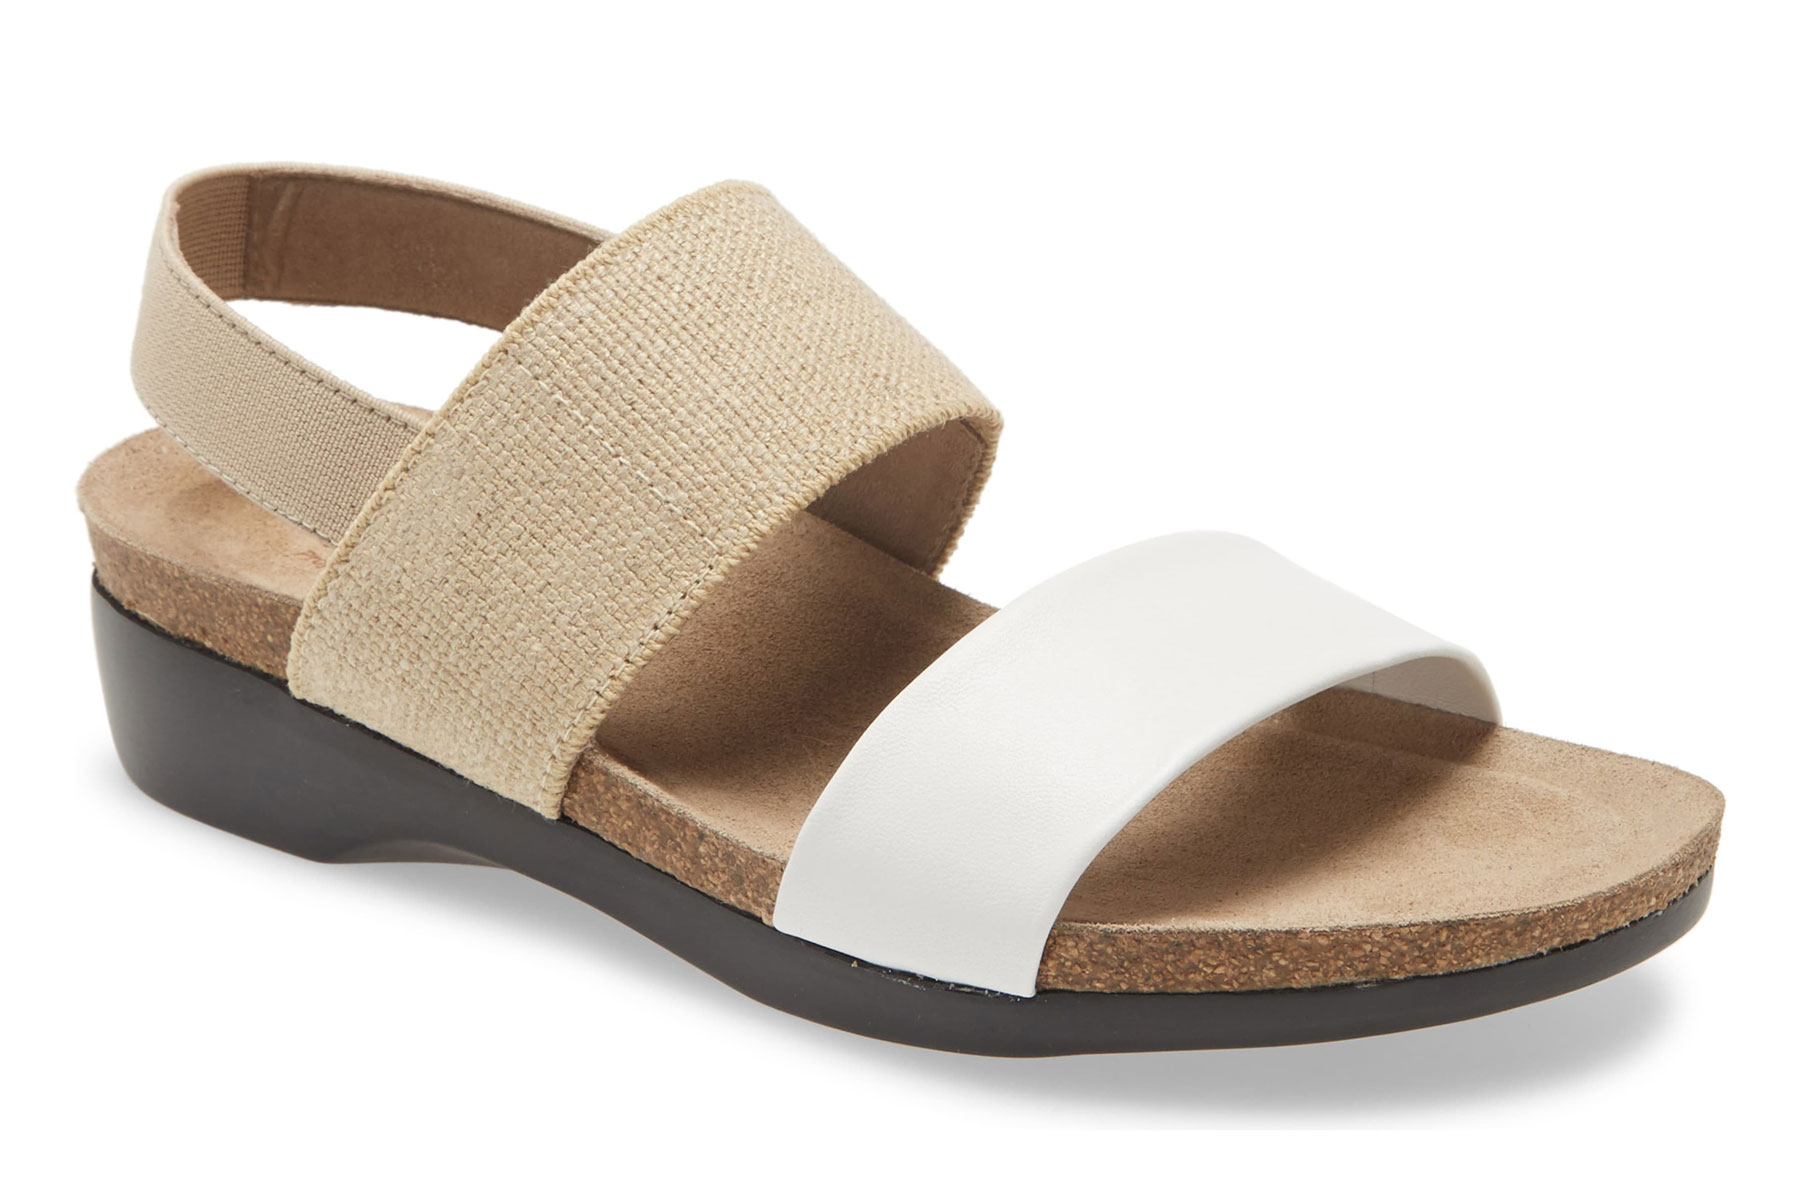 Tand and white leather sandals